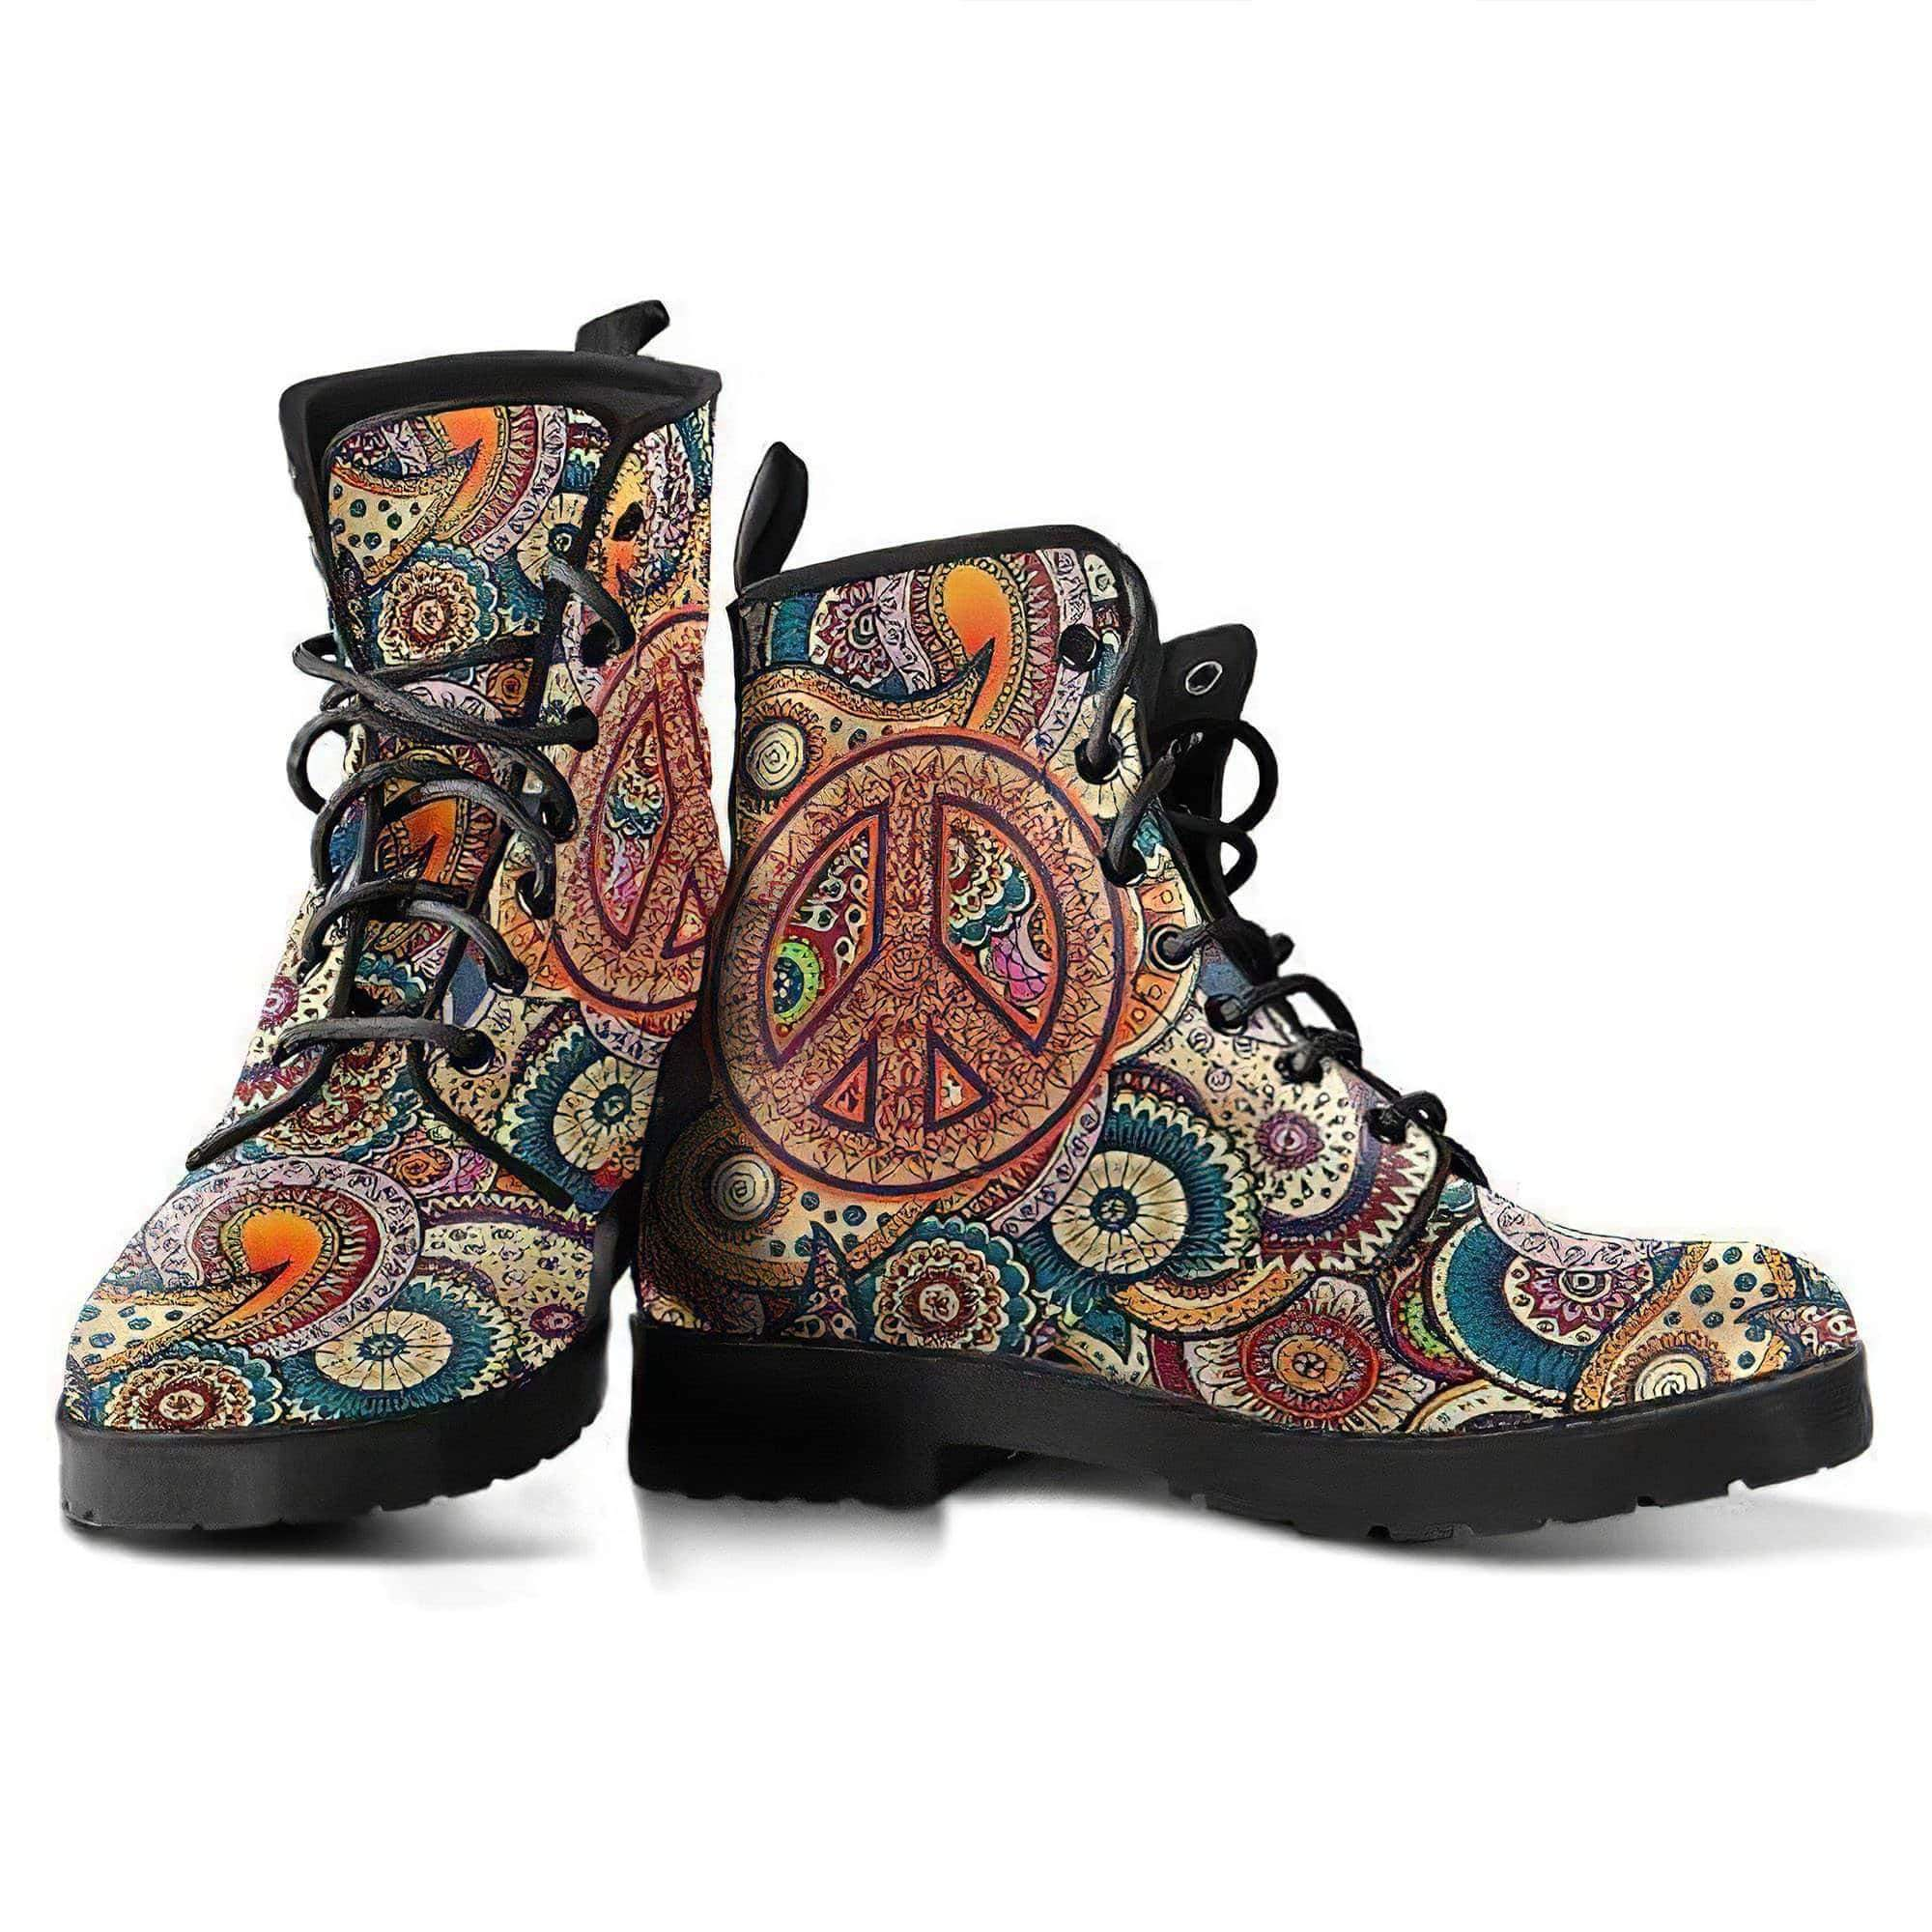 Peace Henna Mandala Women's Leather Boots Women's Leather Boots